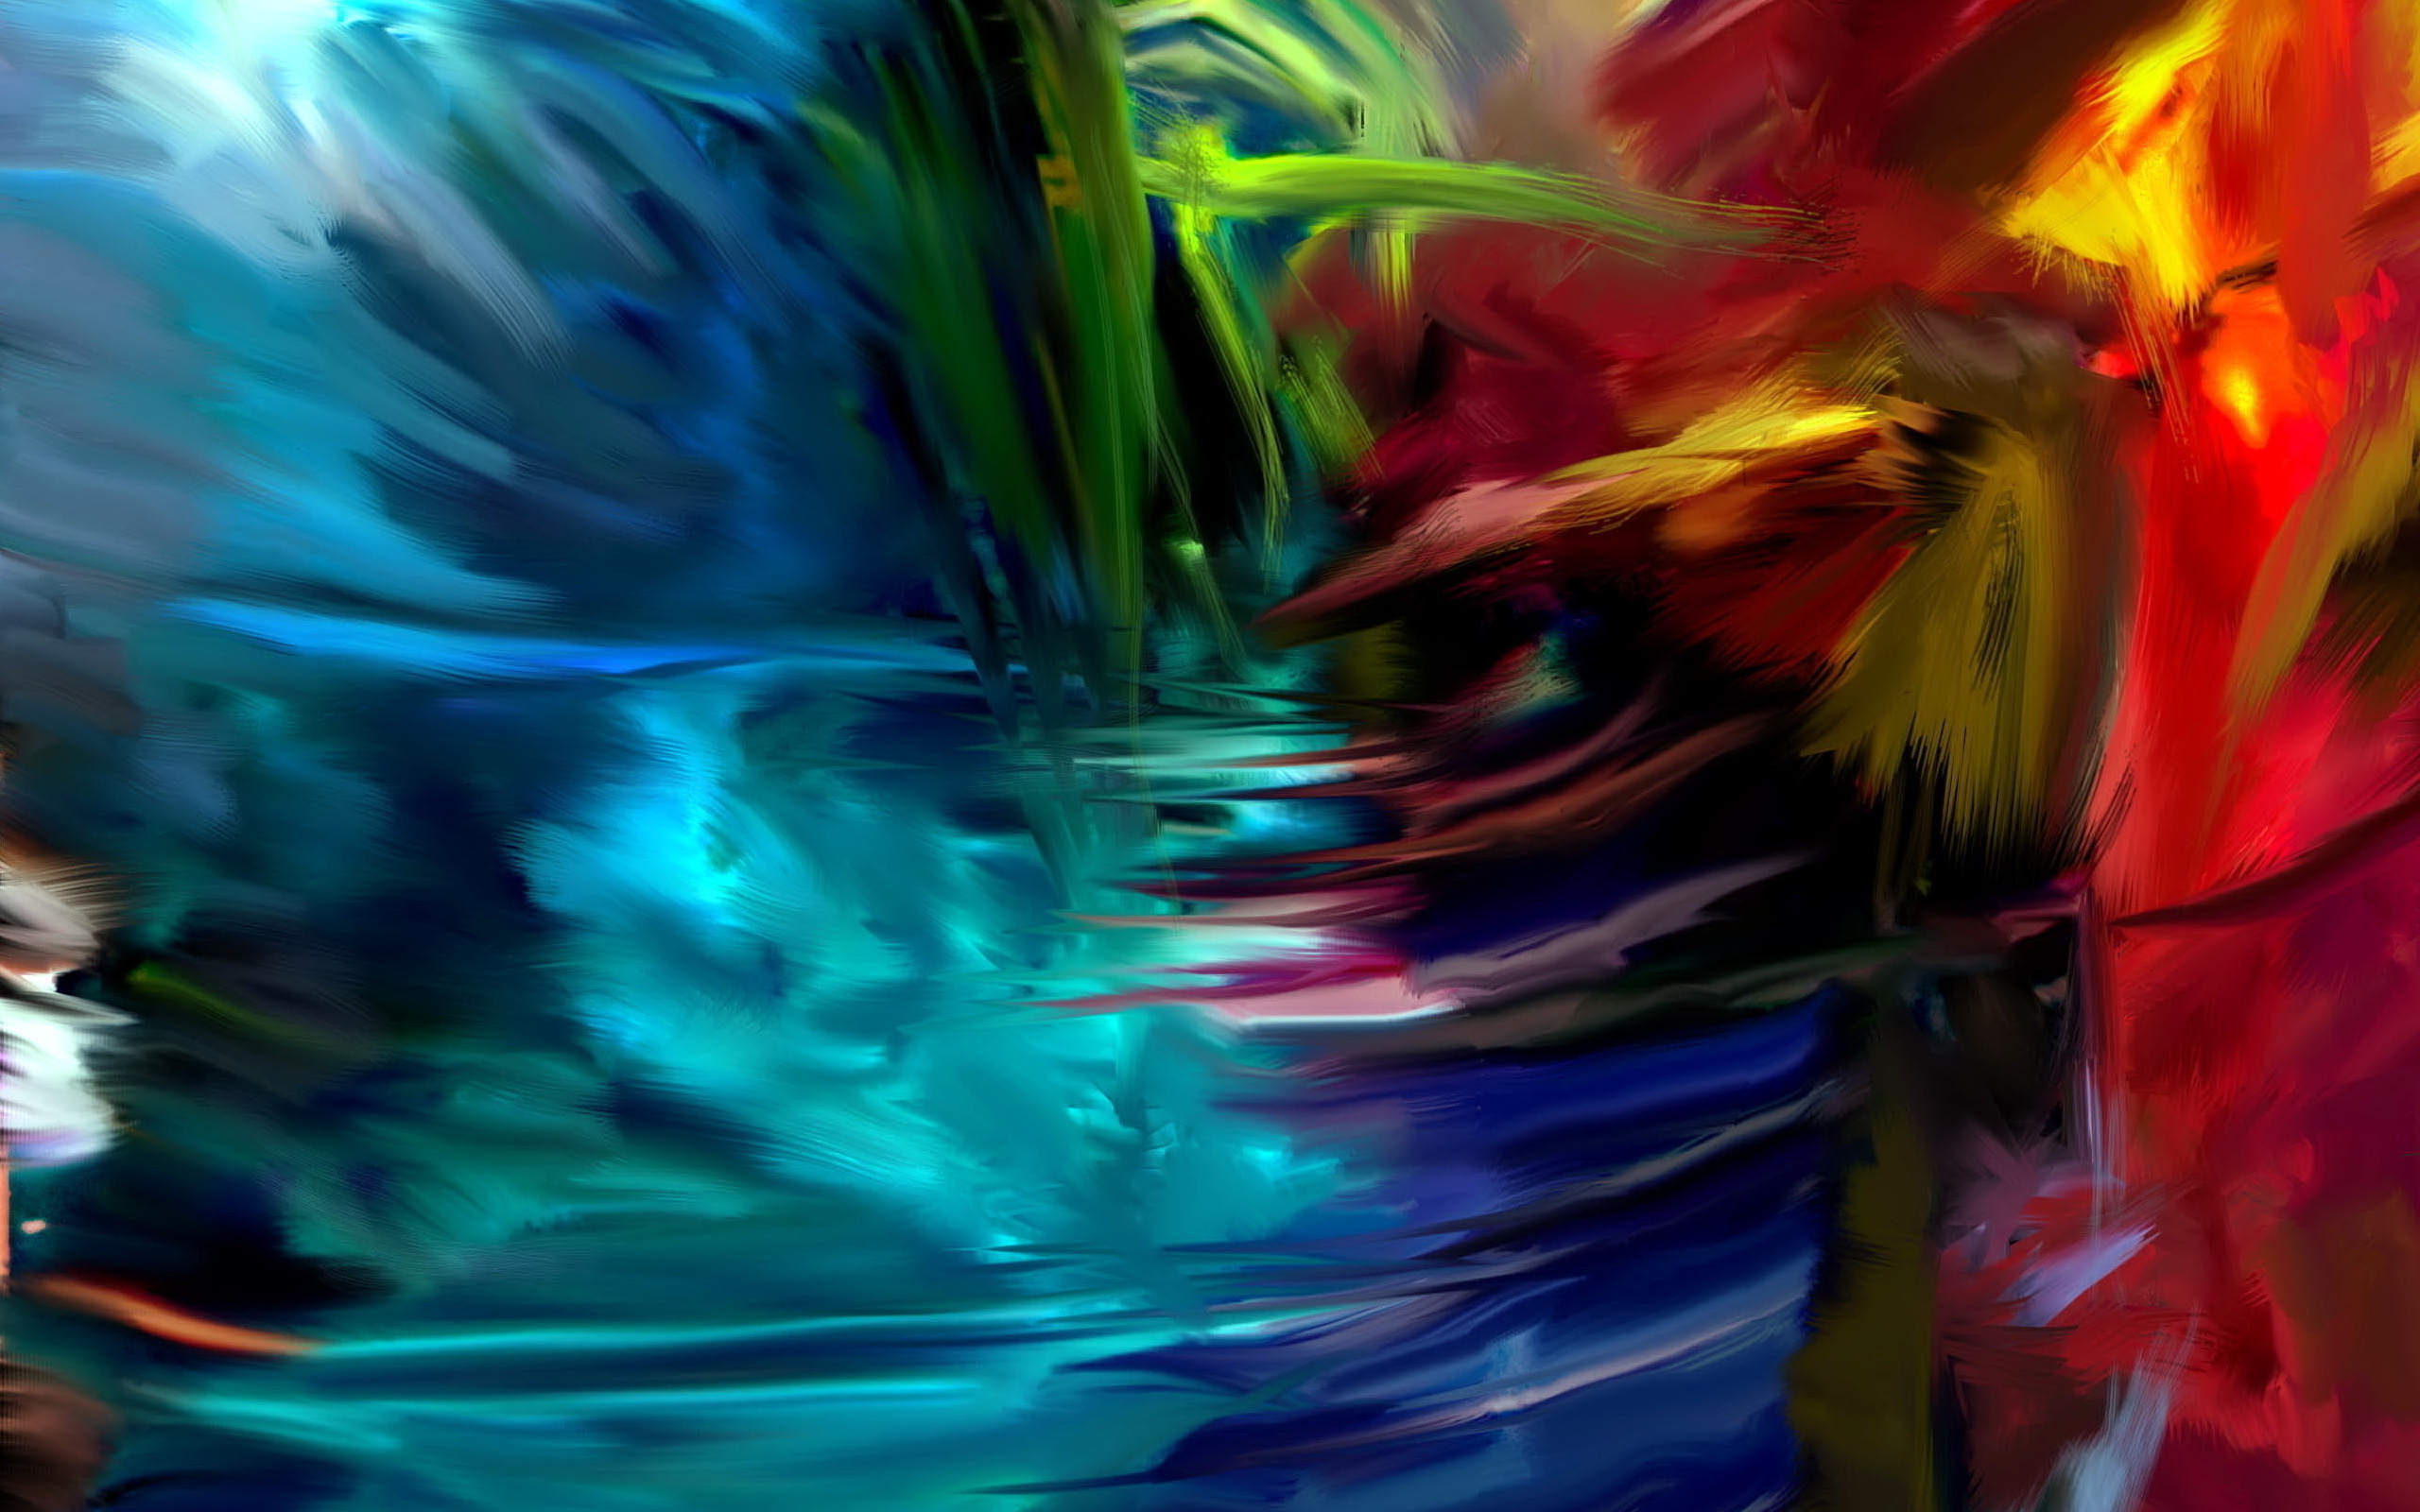 Abstract artistic art